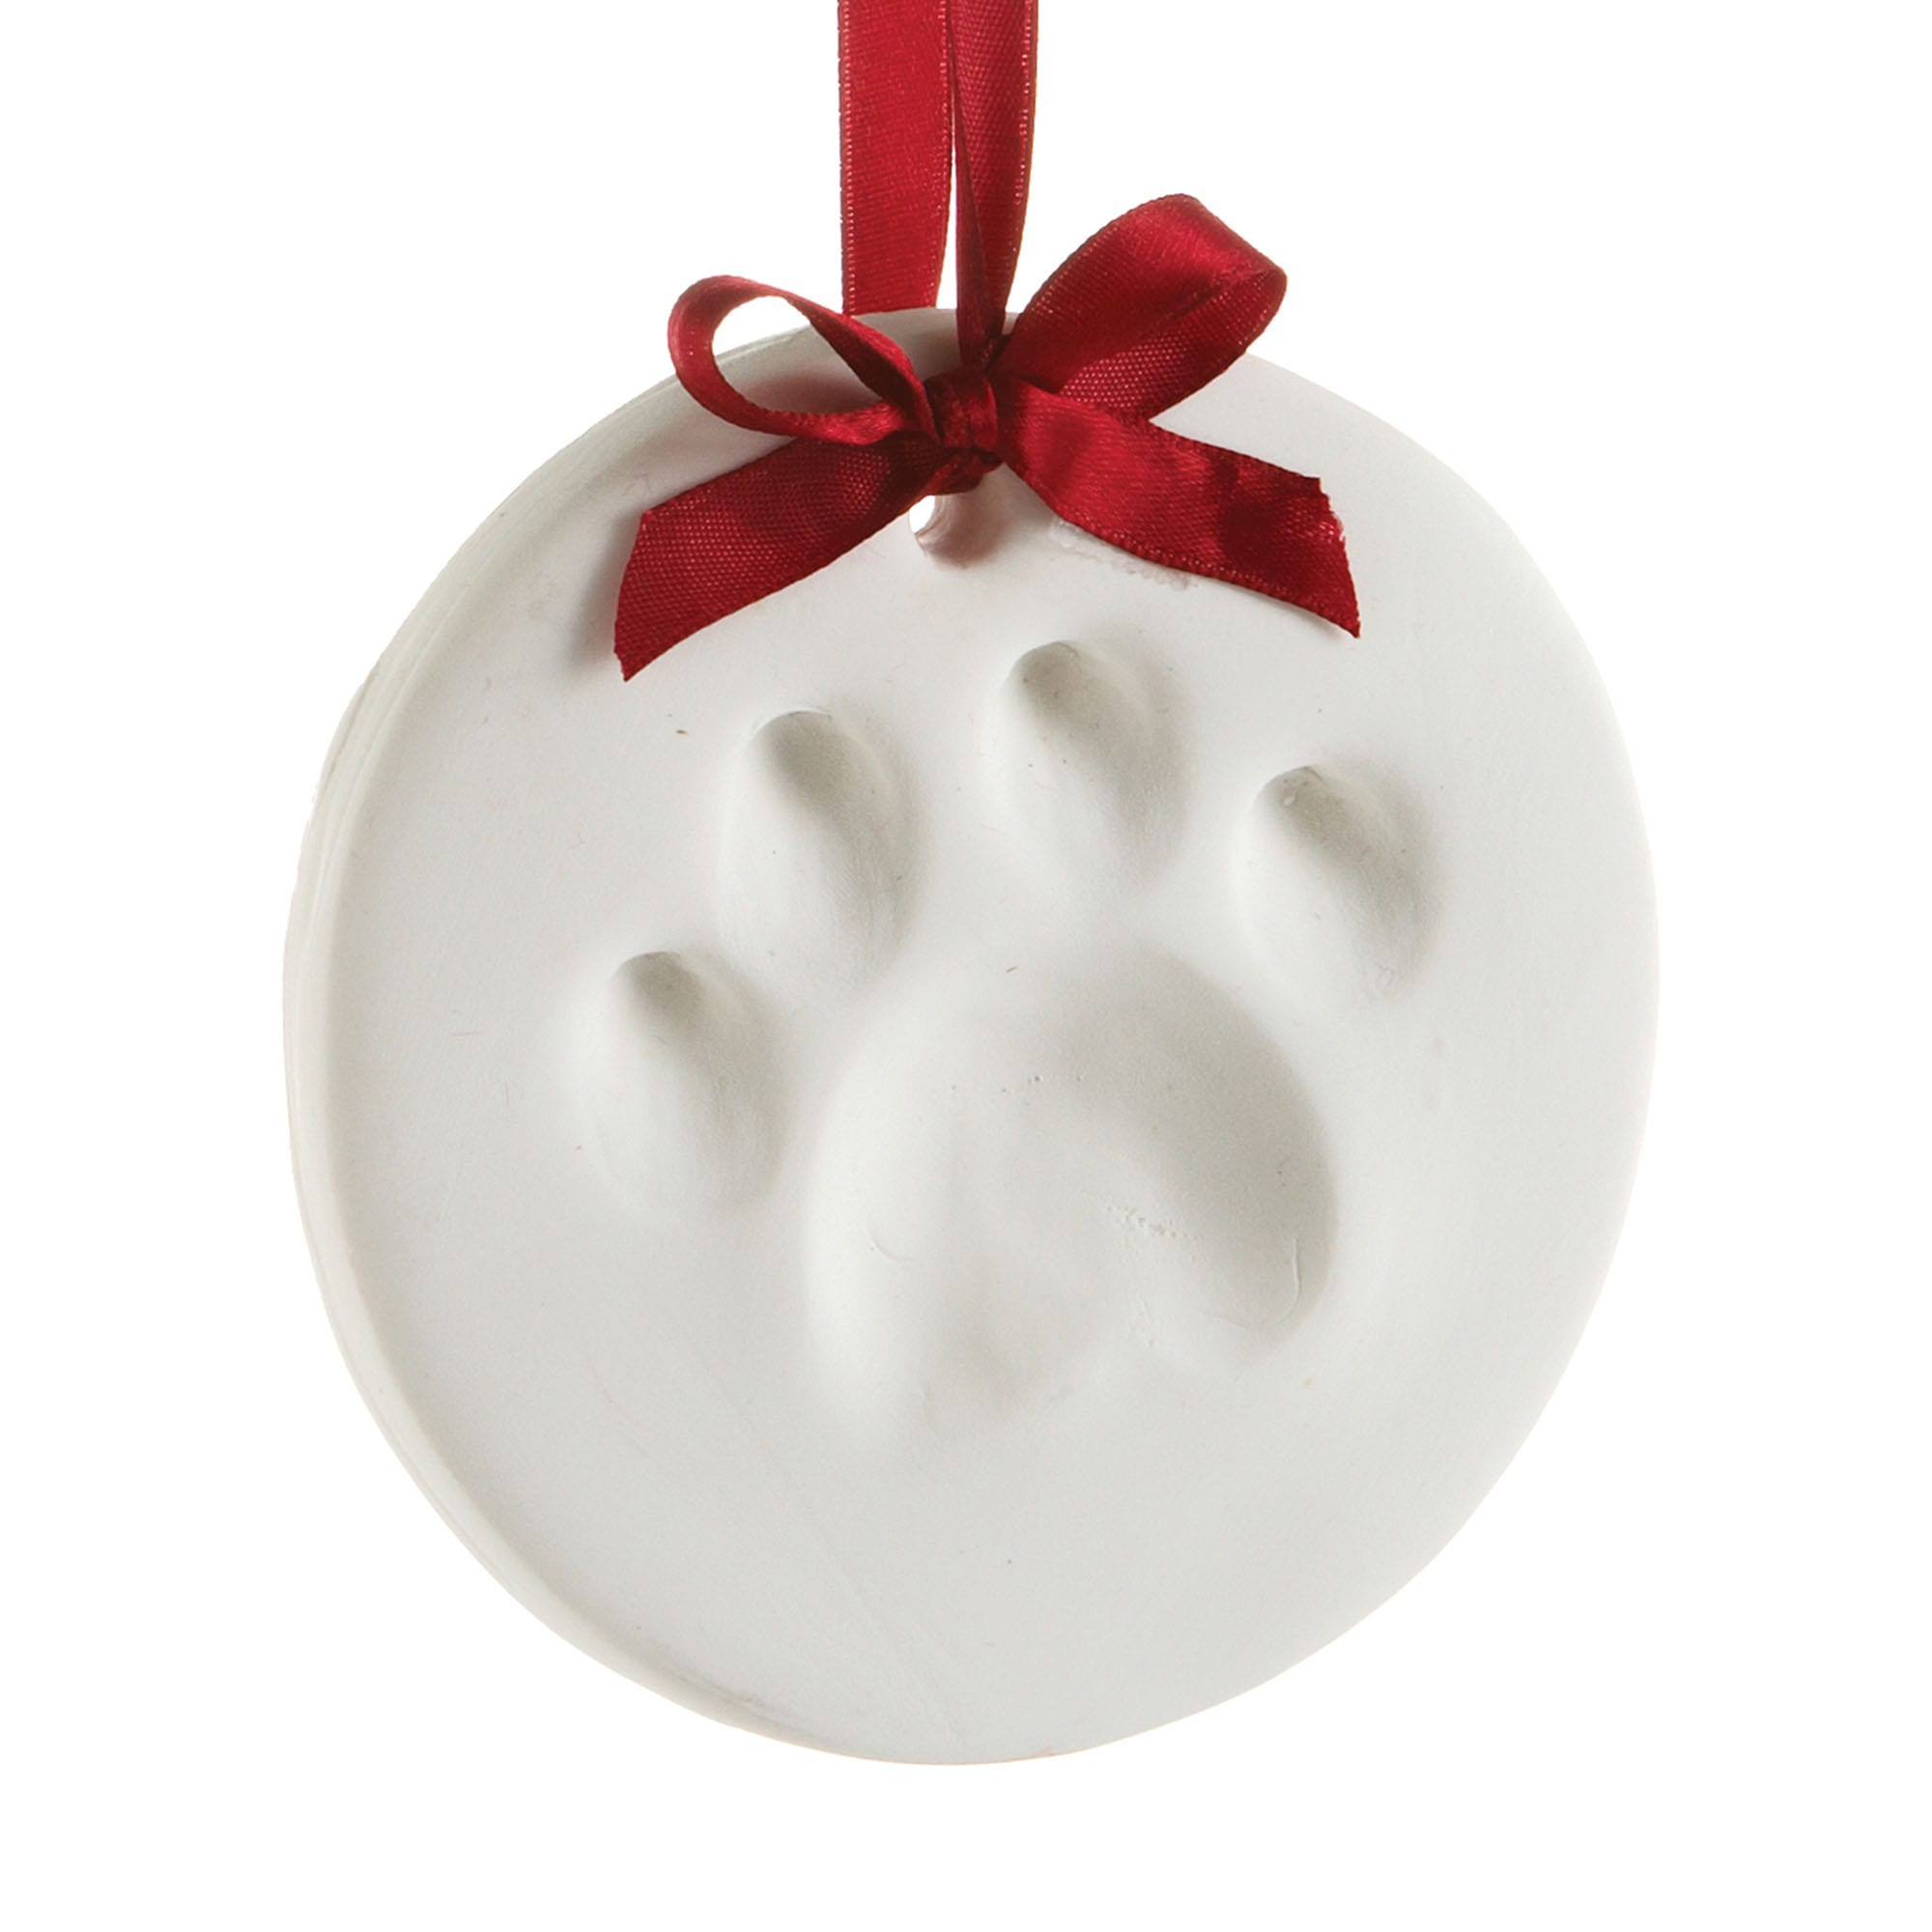 Pearhead Pawprints Holiday Ornament Impression Kit For Dogs Or Cats Petco